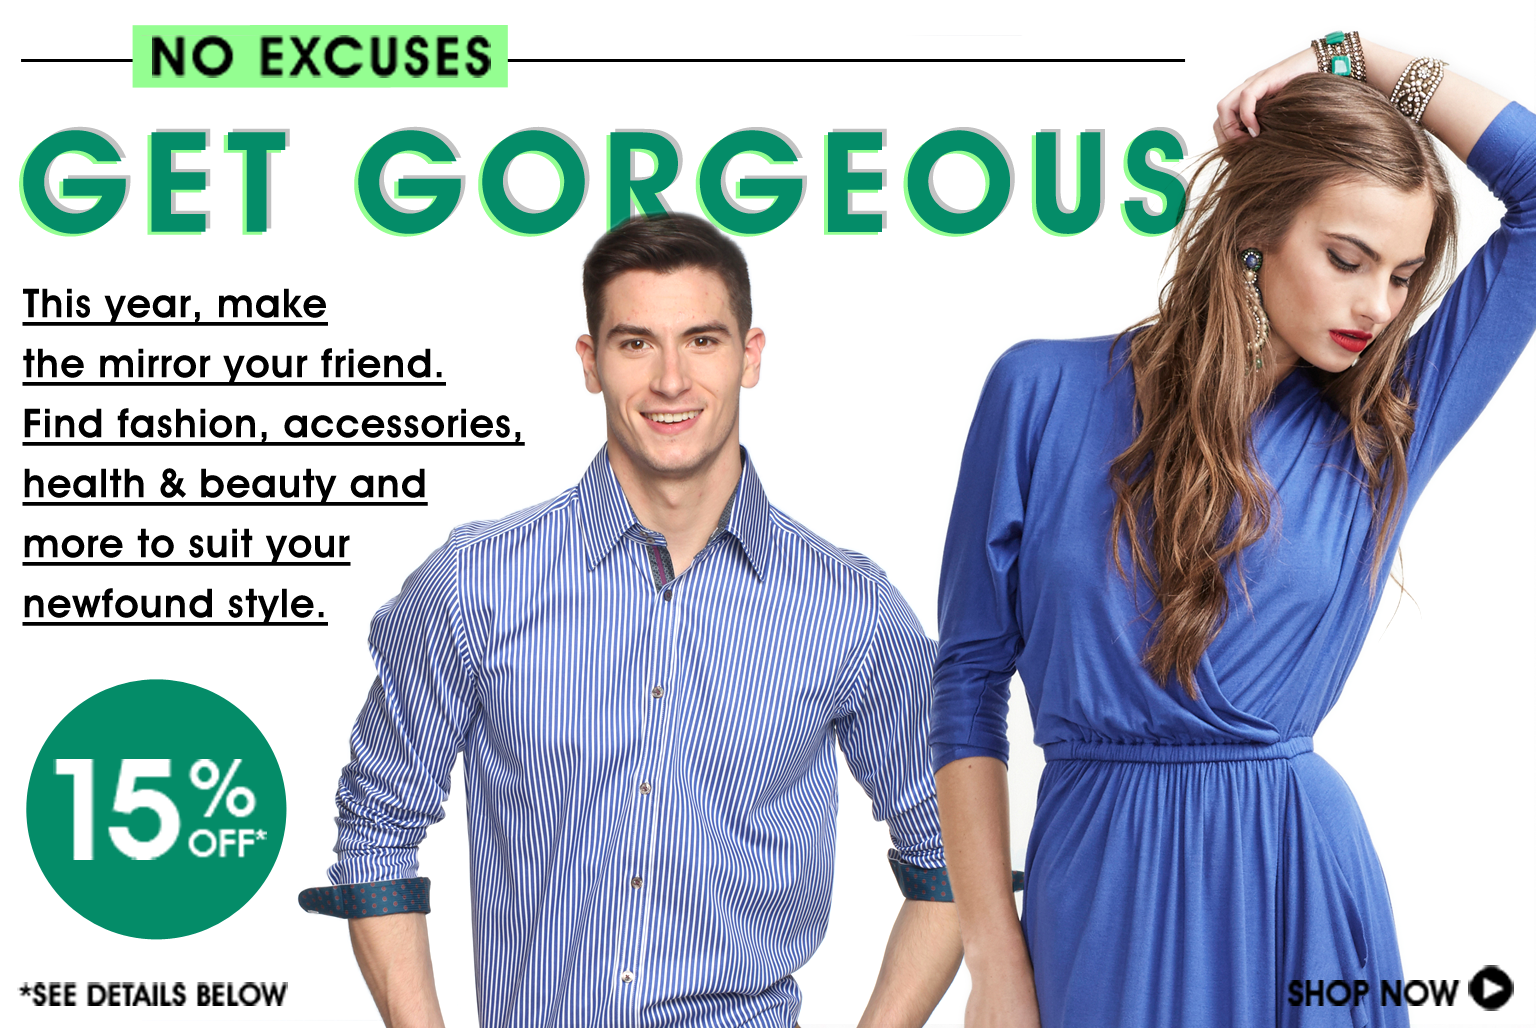 Get Gorgeous 15% Off No Excuses